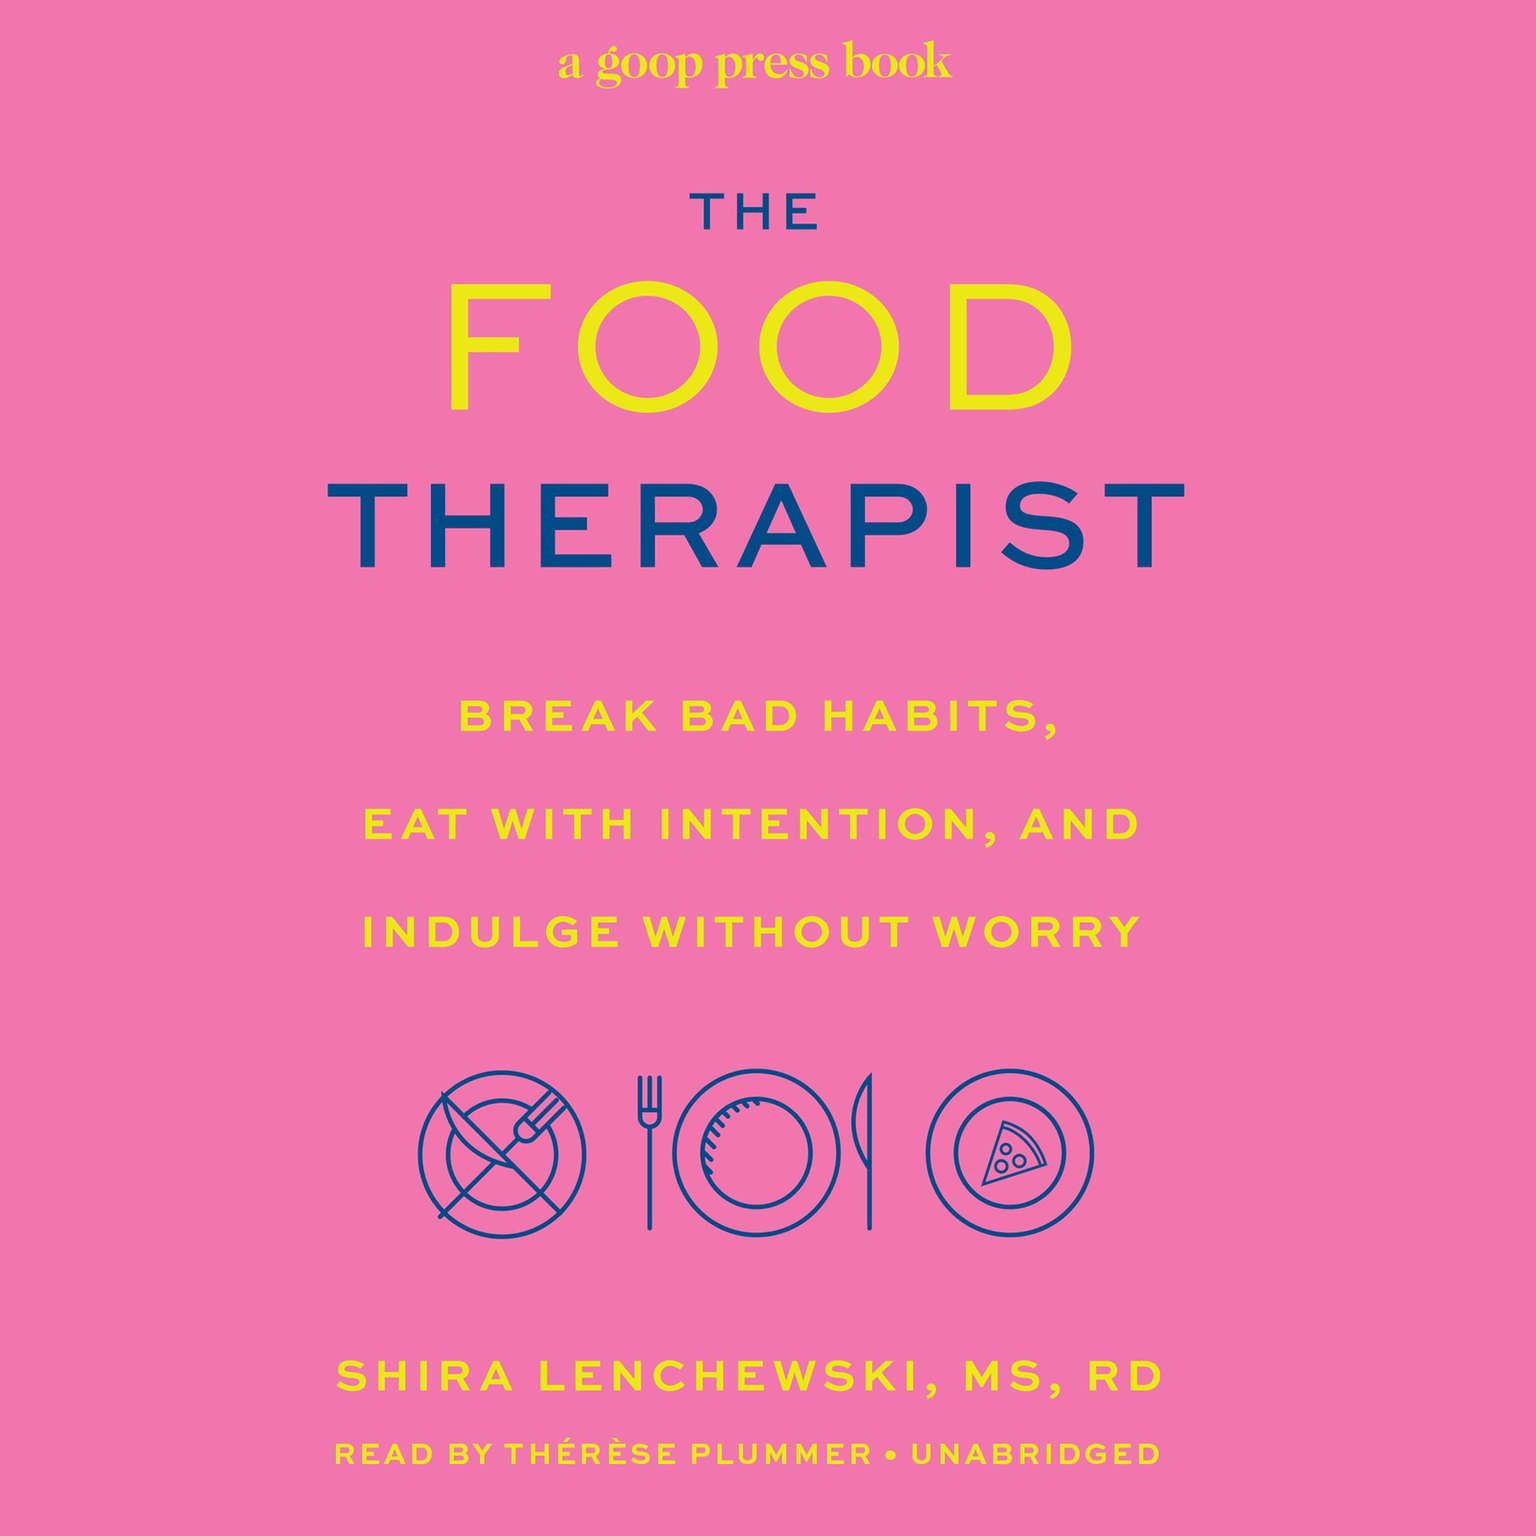 The Food Therapist: Break Bad Habits, Eat with Intention, and Indulge Without Worry Audiobook, by Shira Lenchewski